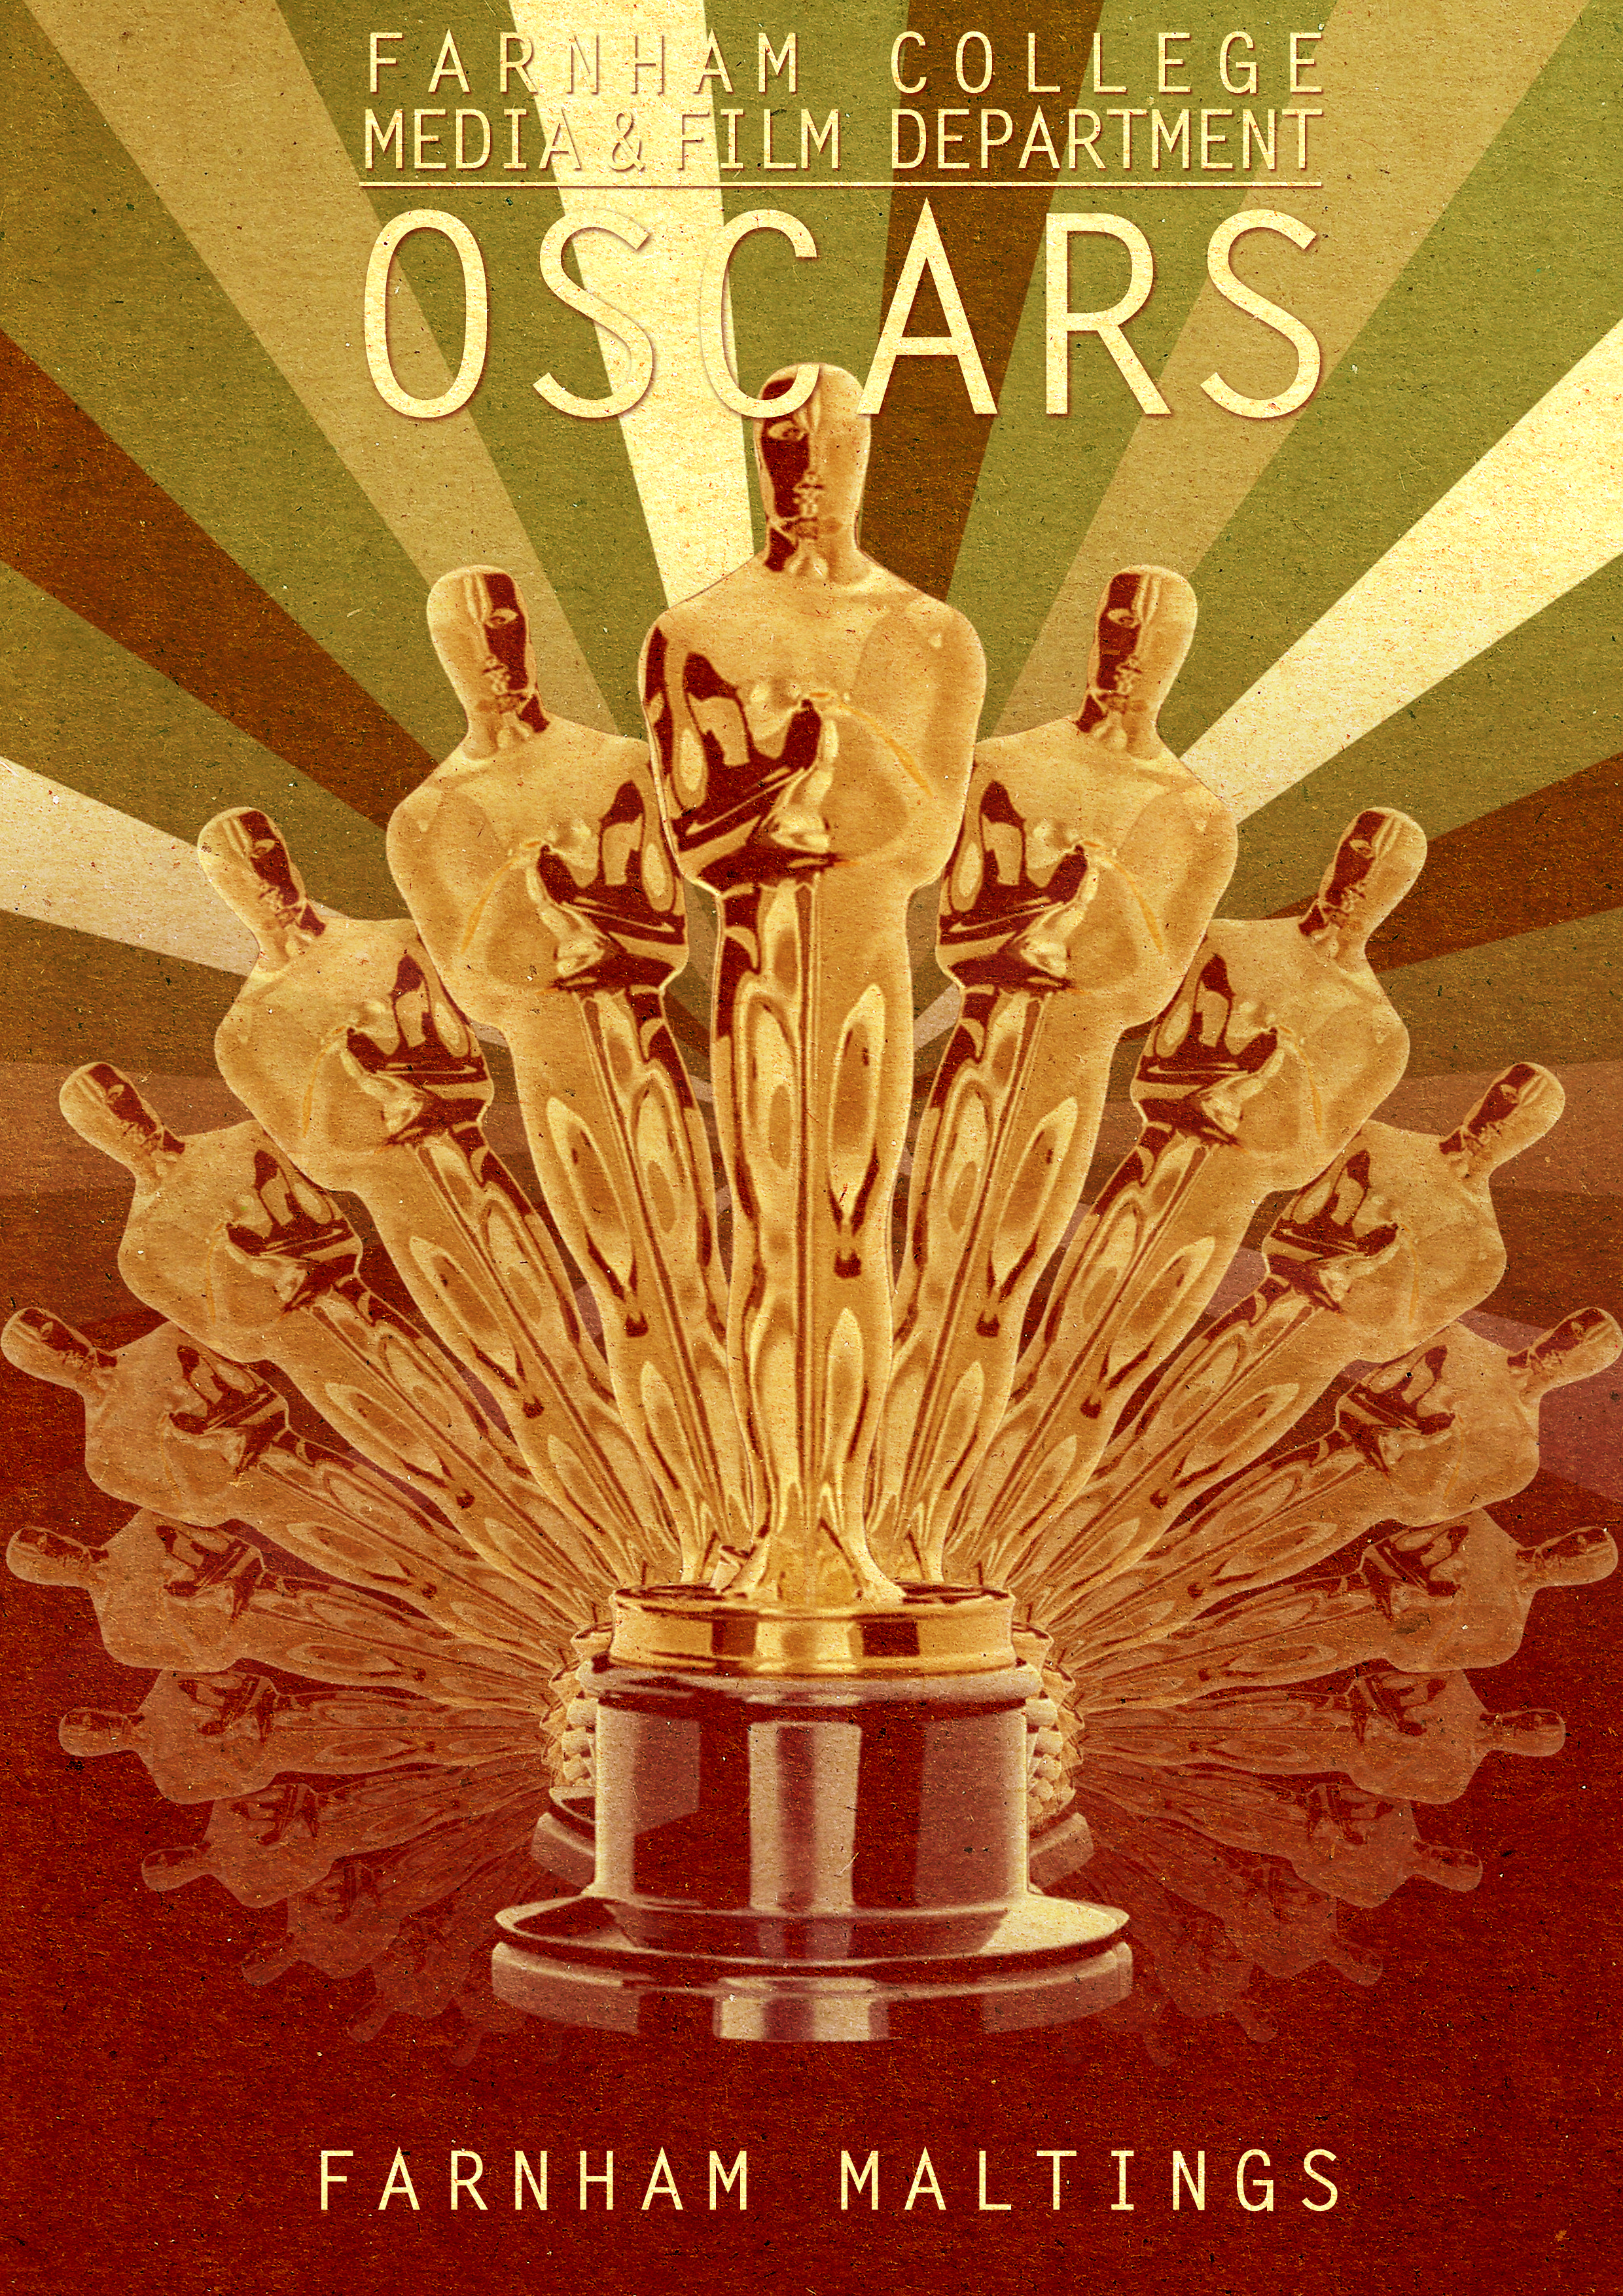 Oscars 2011 Poster